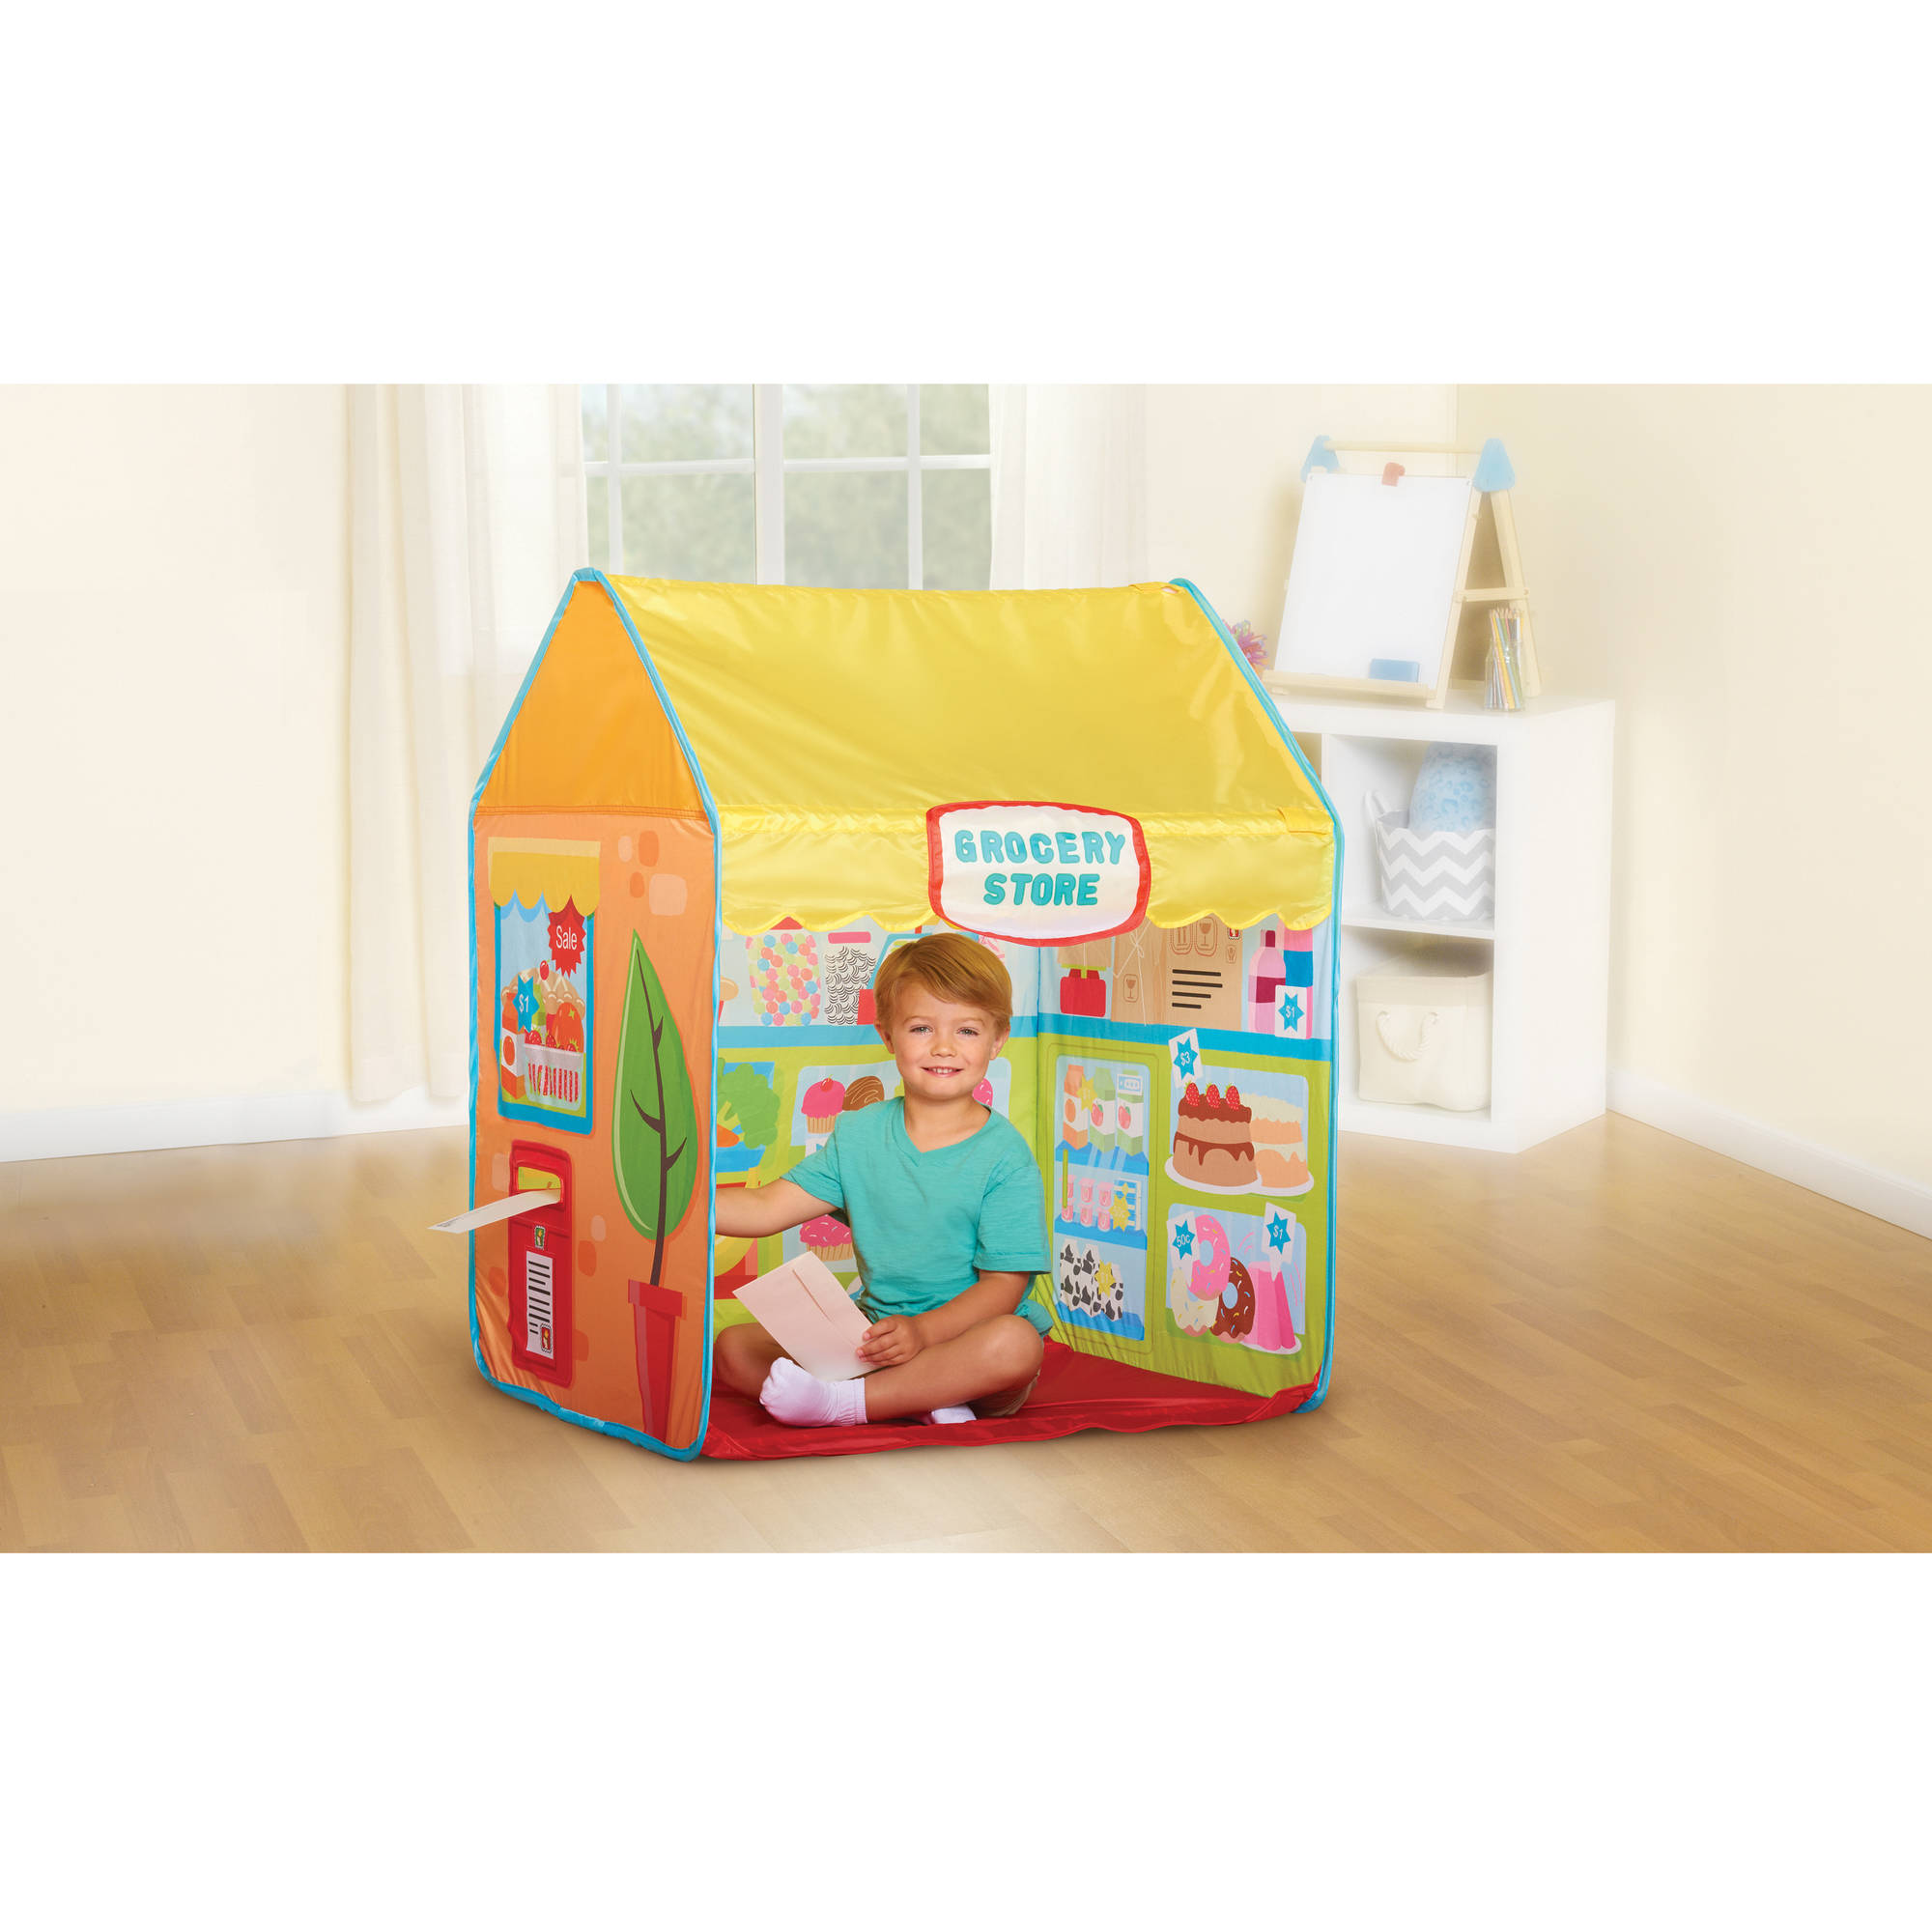 Grocery Store Pop Up Play Tent